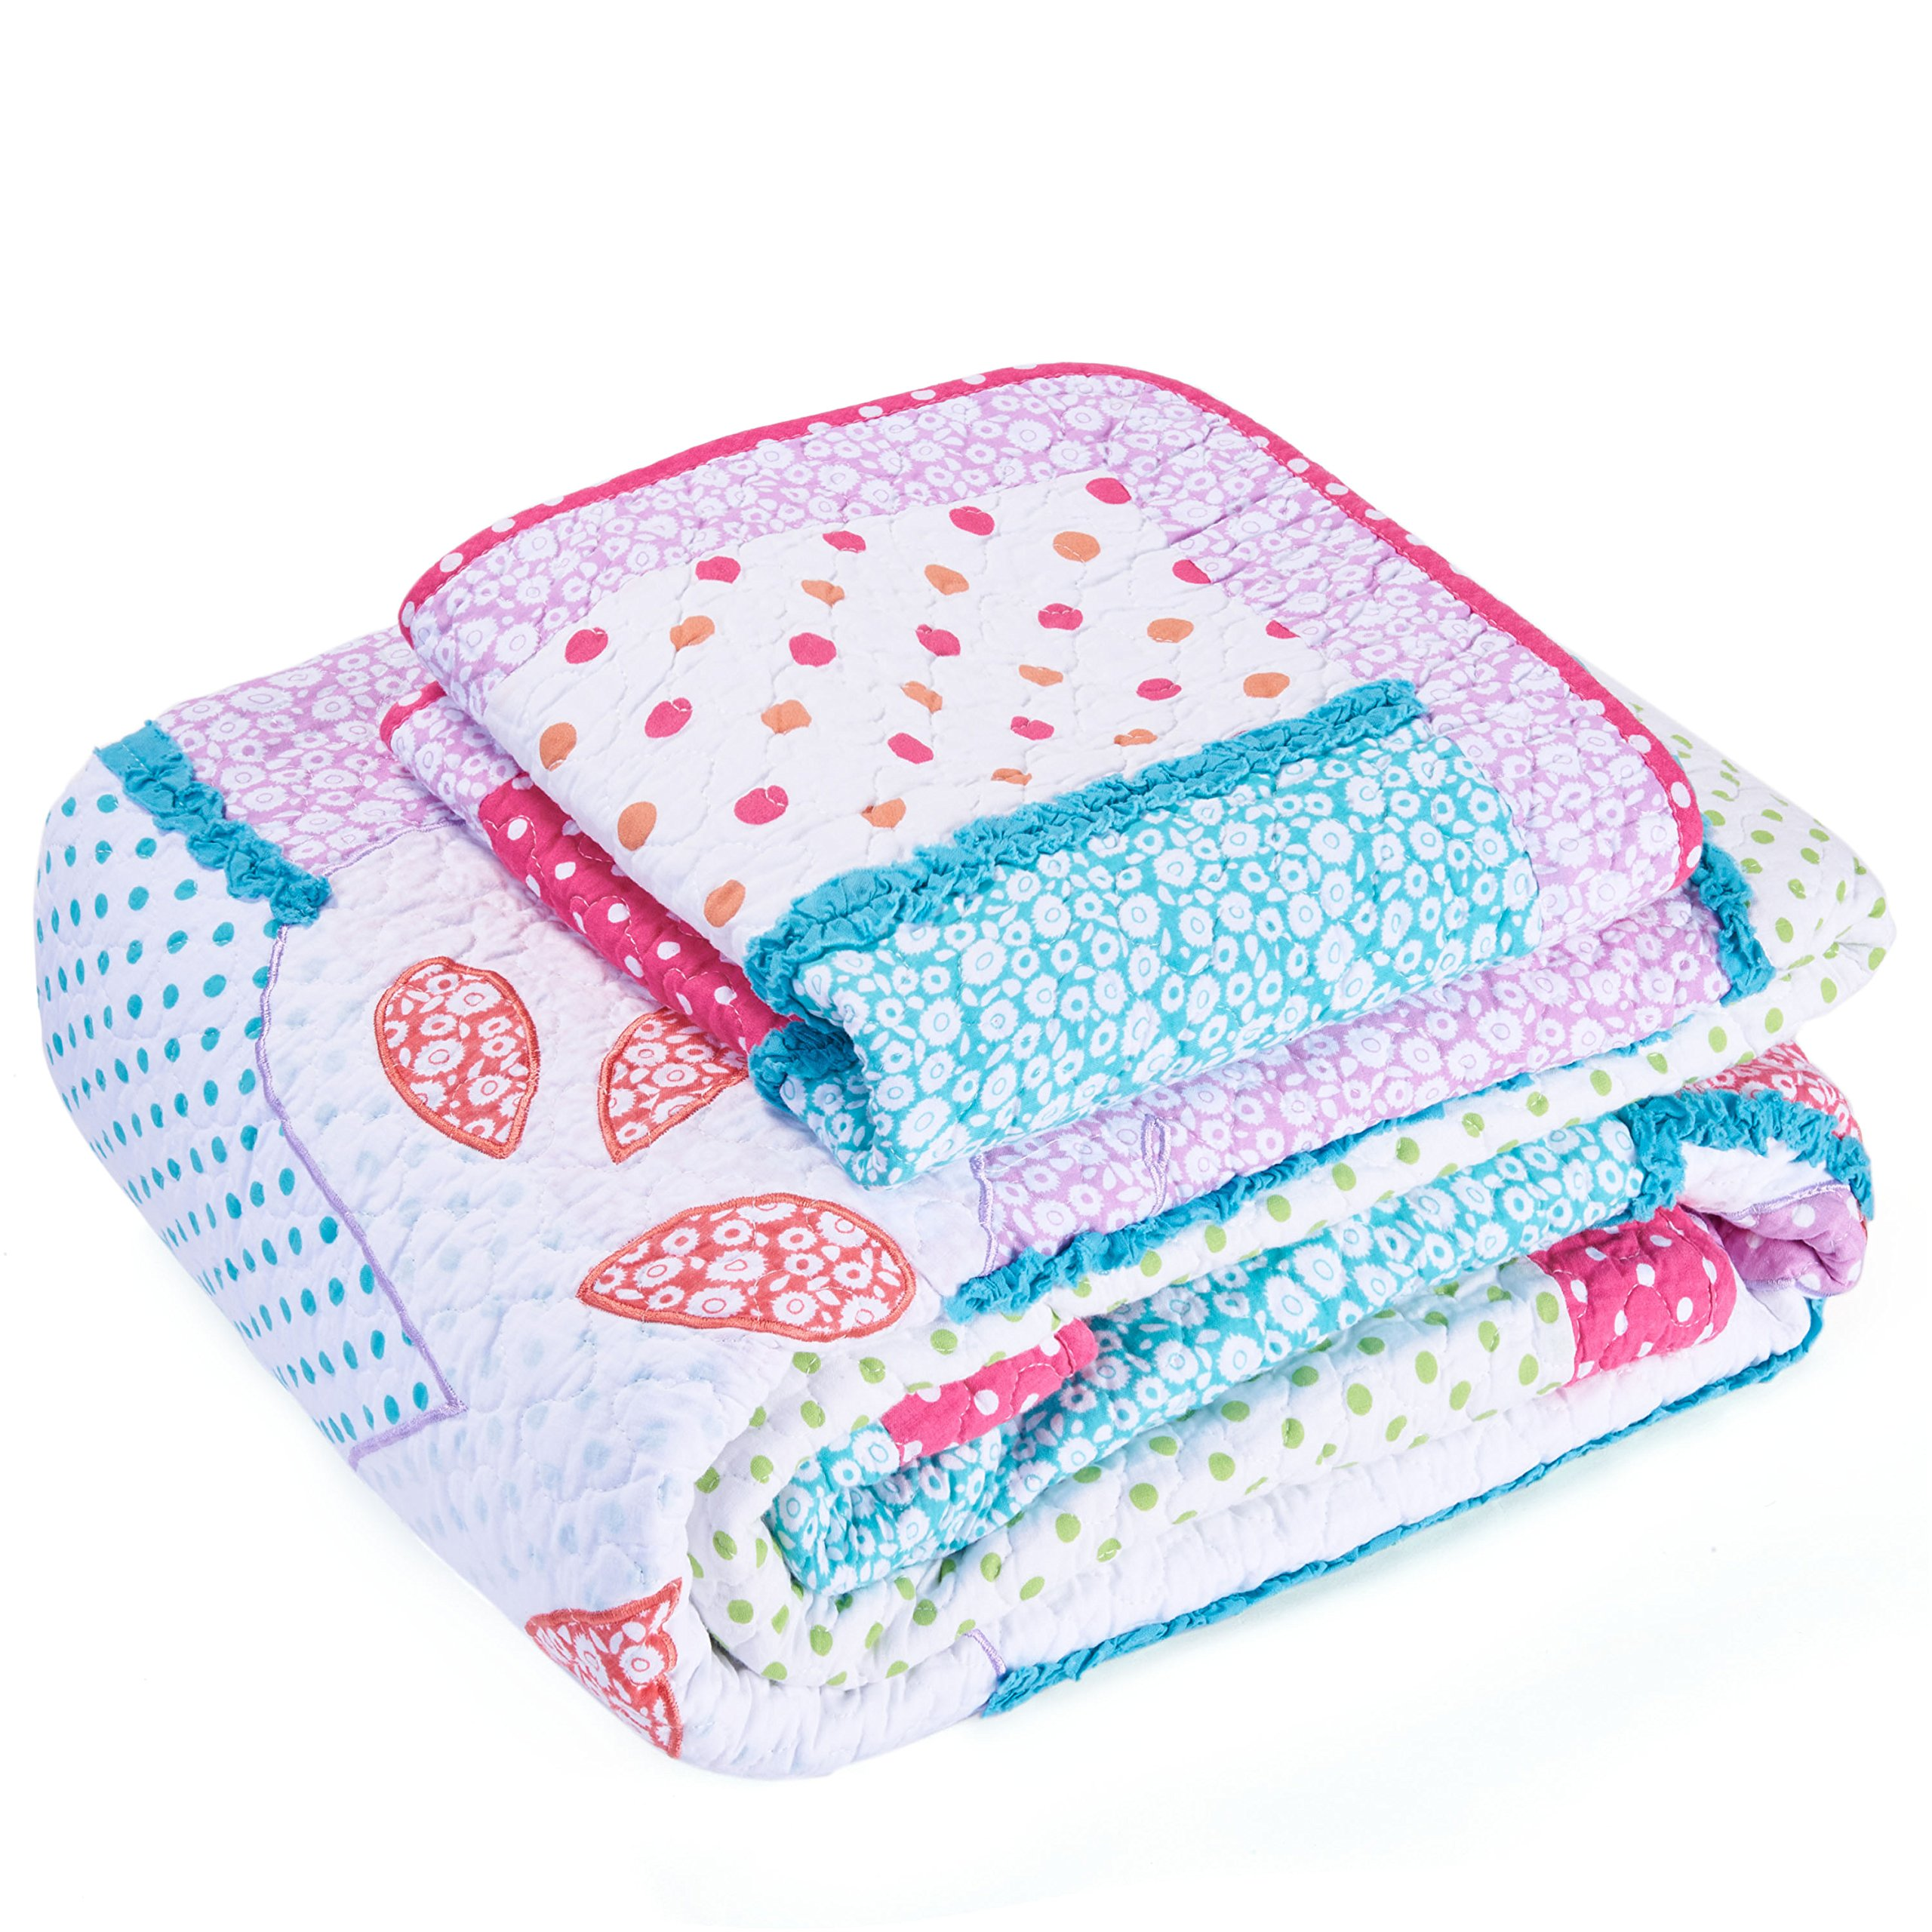 Cute Girls Stitching Patchwork Bedspreads Quilts Set Birds Butterfly Comforter Set 2 Pieces Twin